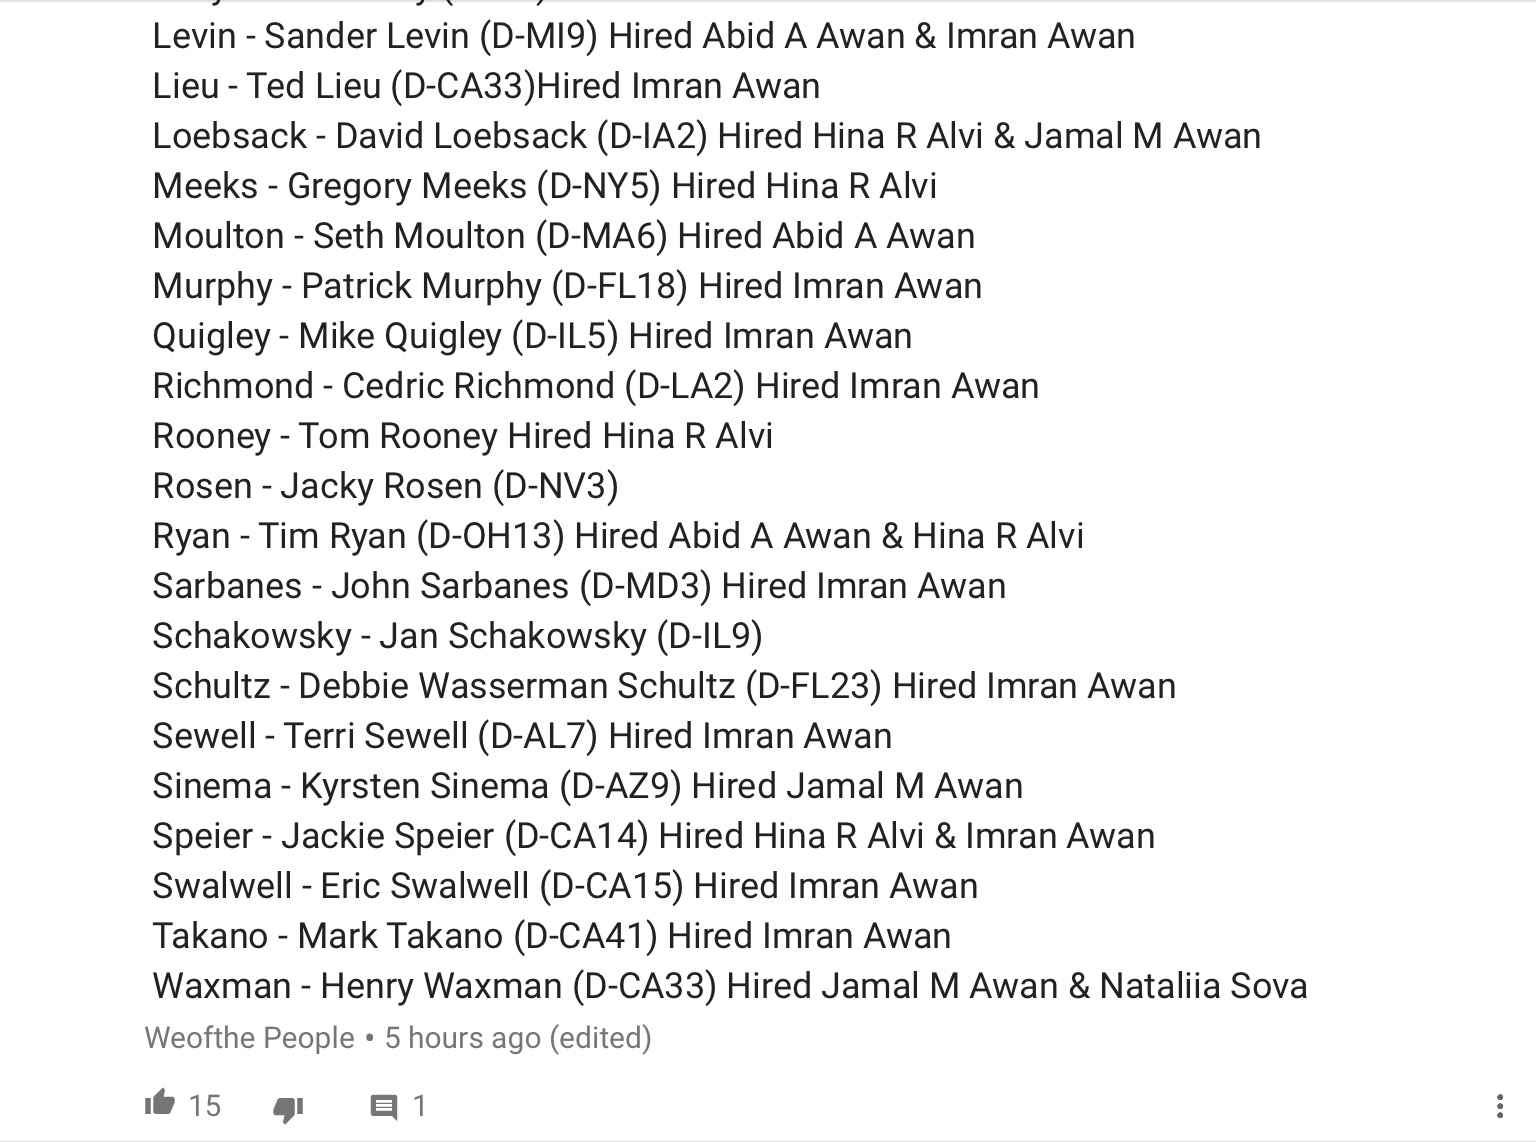 List of Congressional Members employing Imran Awan and his cohorts